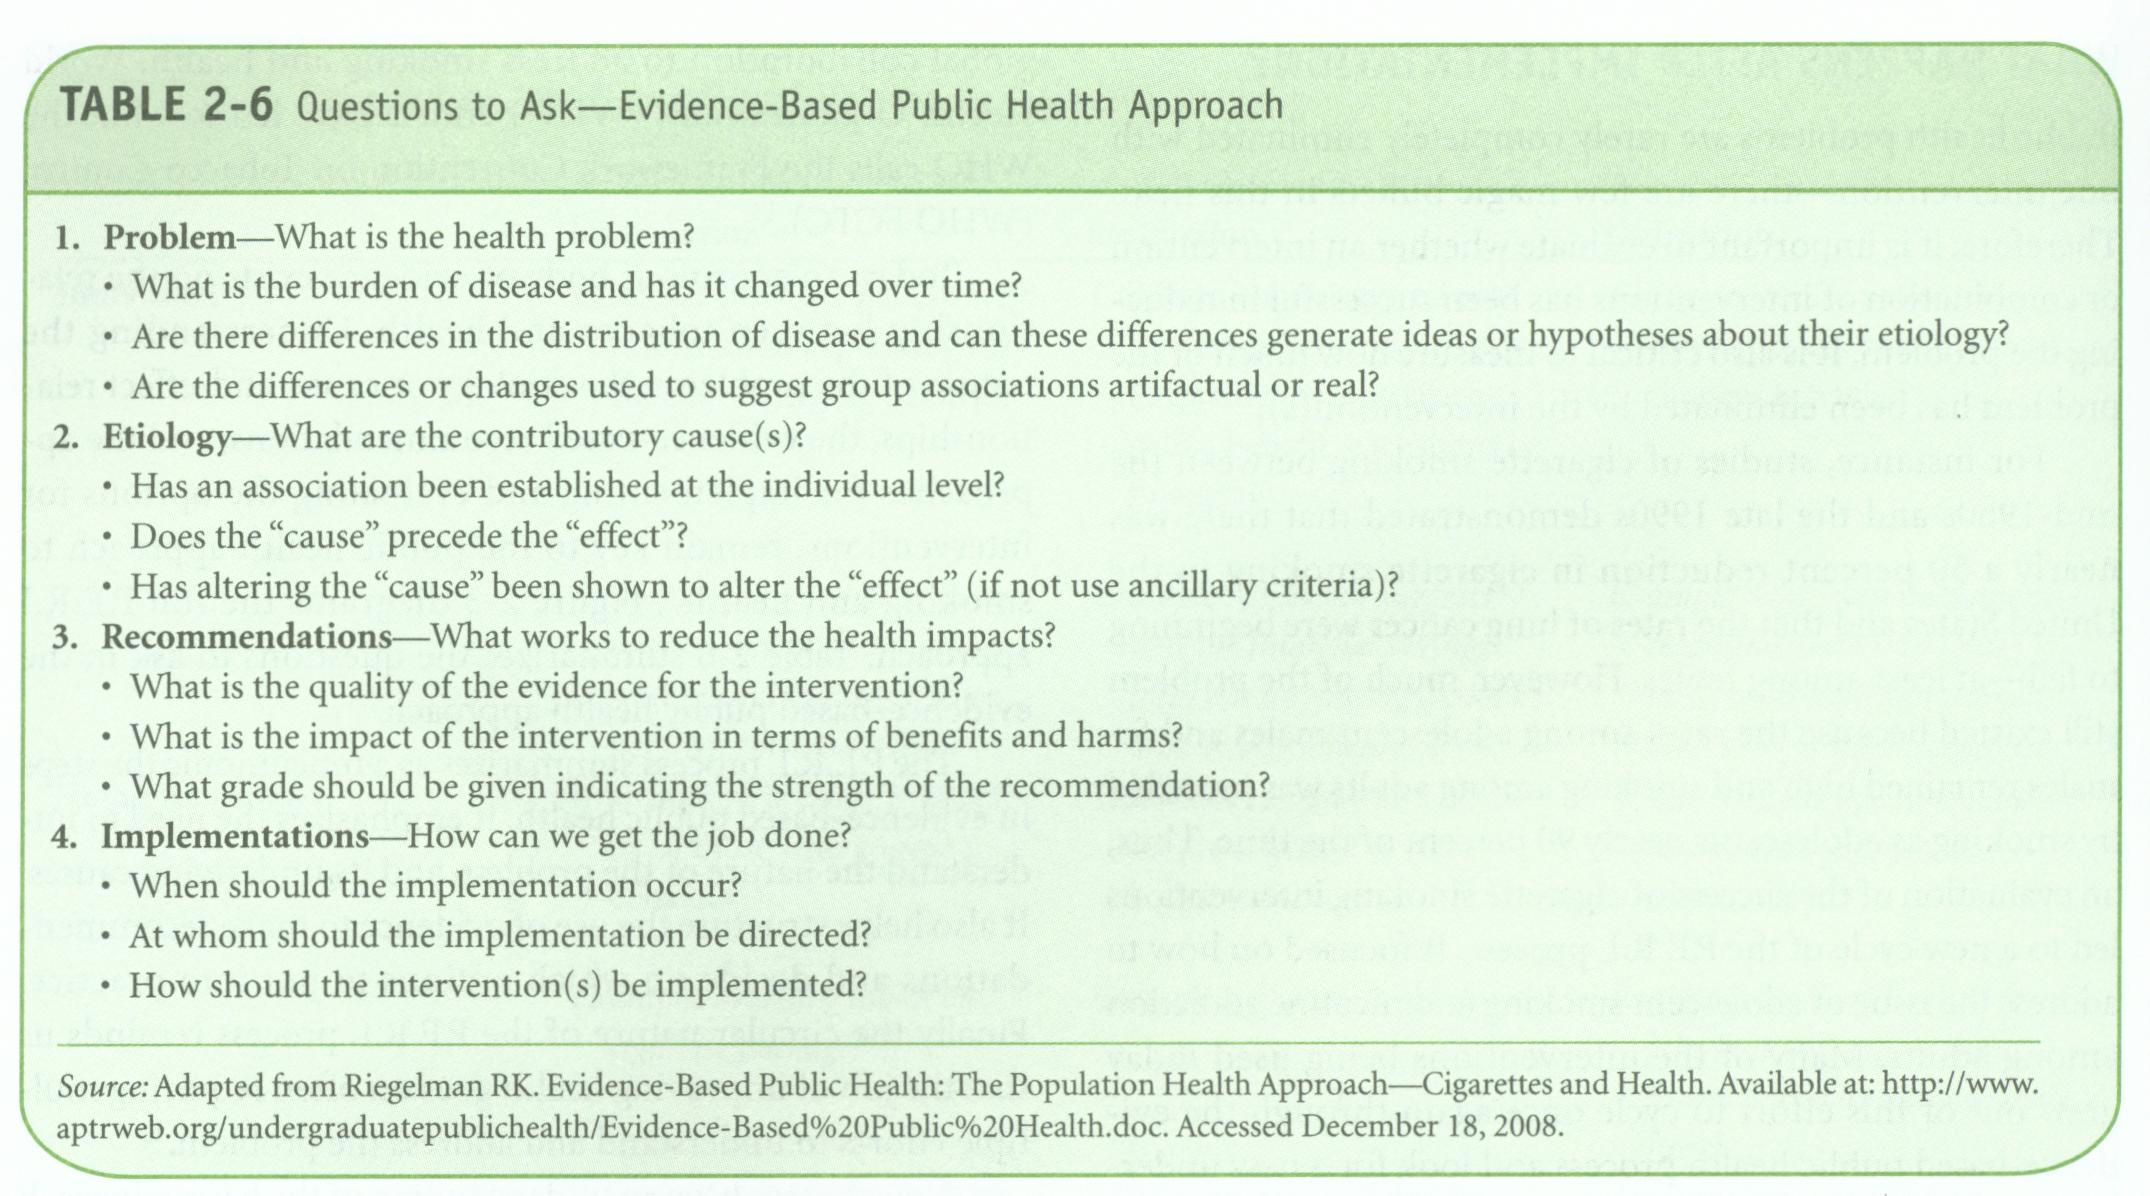 Questions to Ask: Evidence-Based Public Health Approach